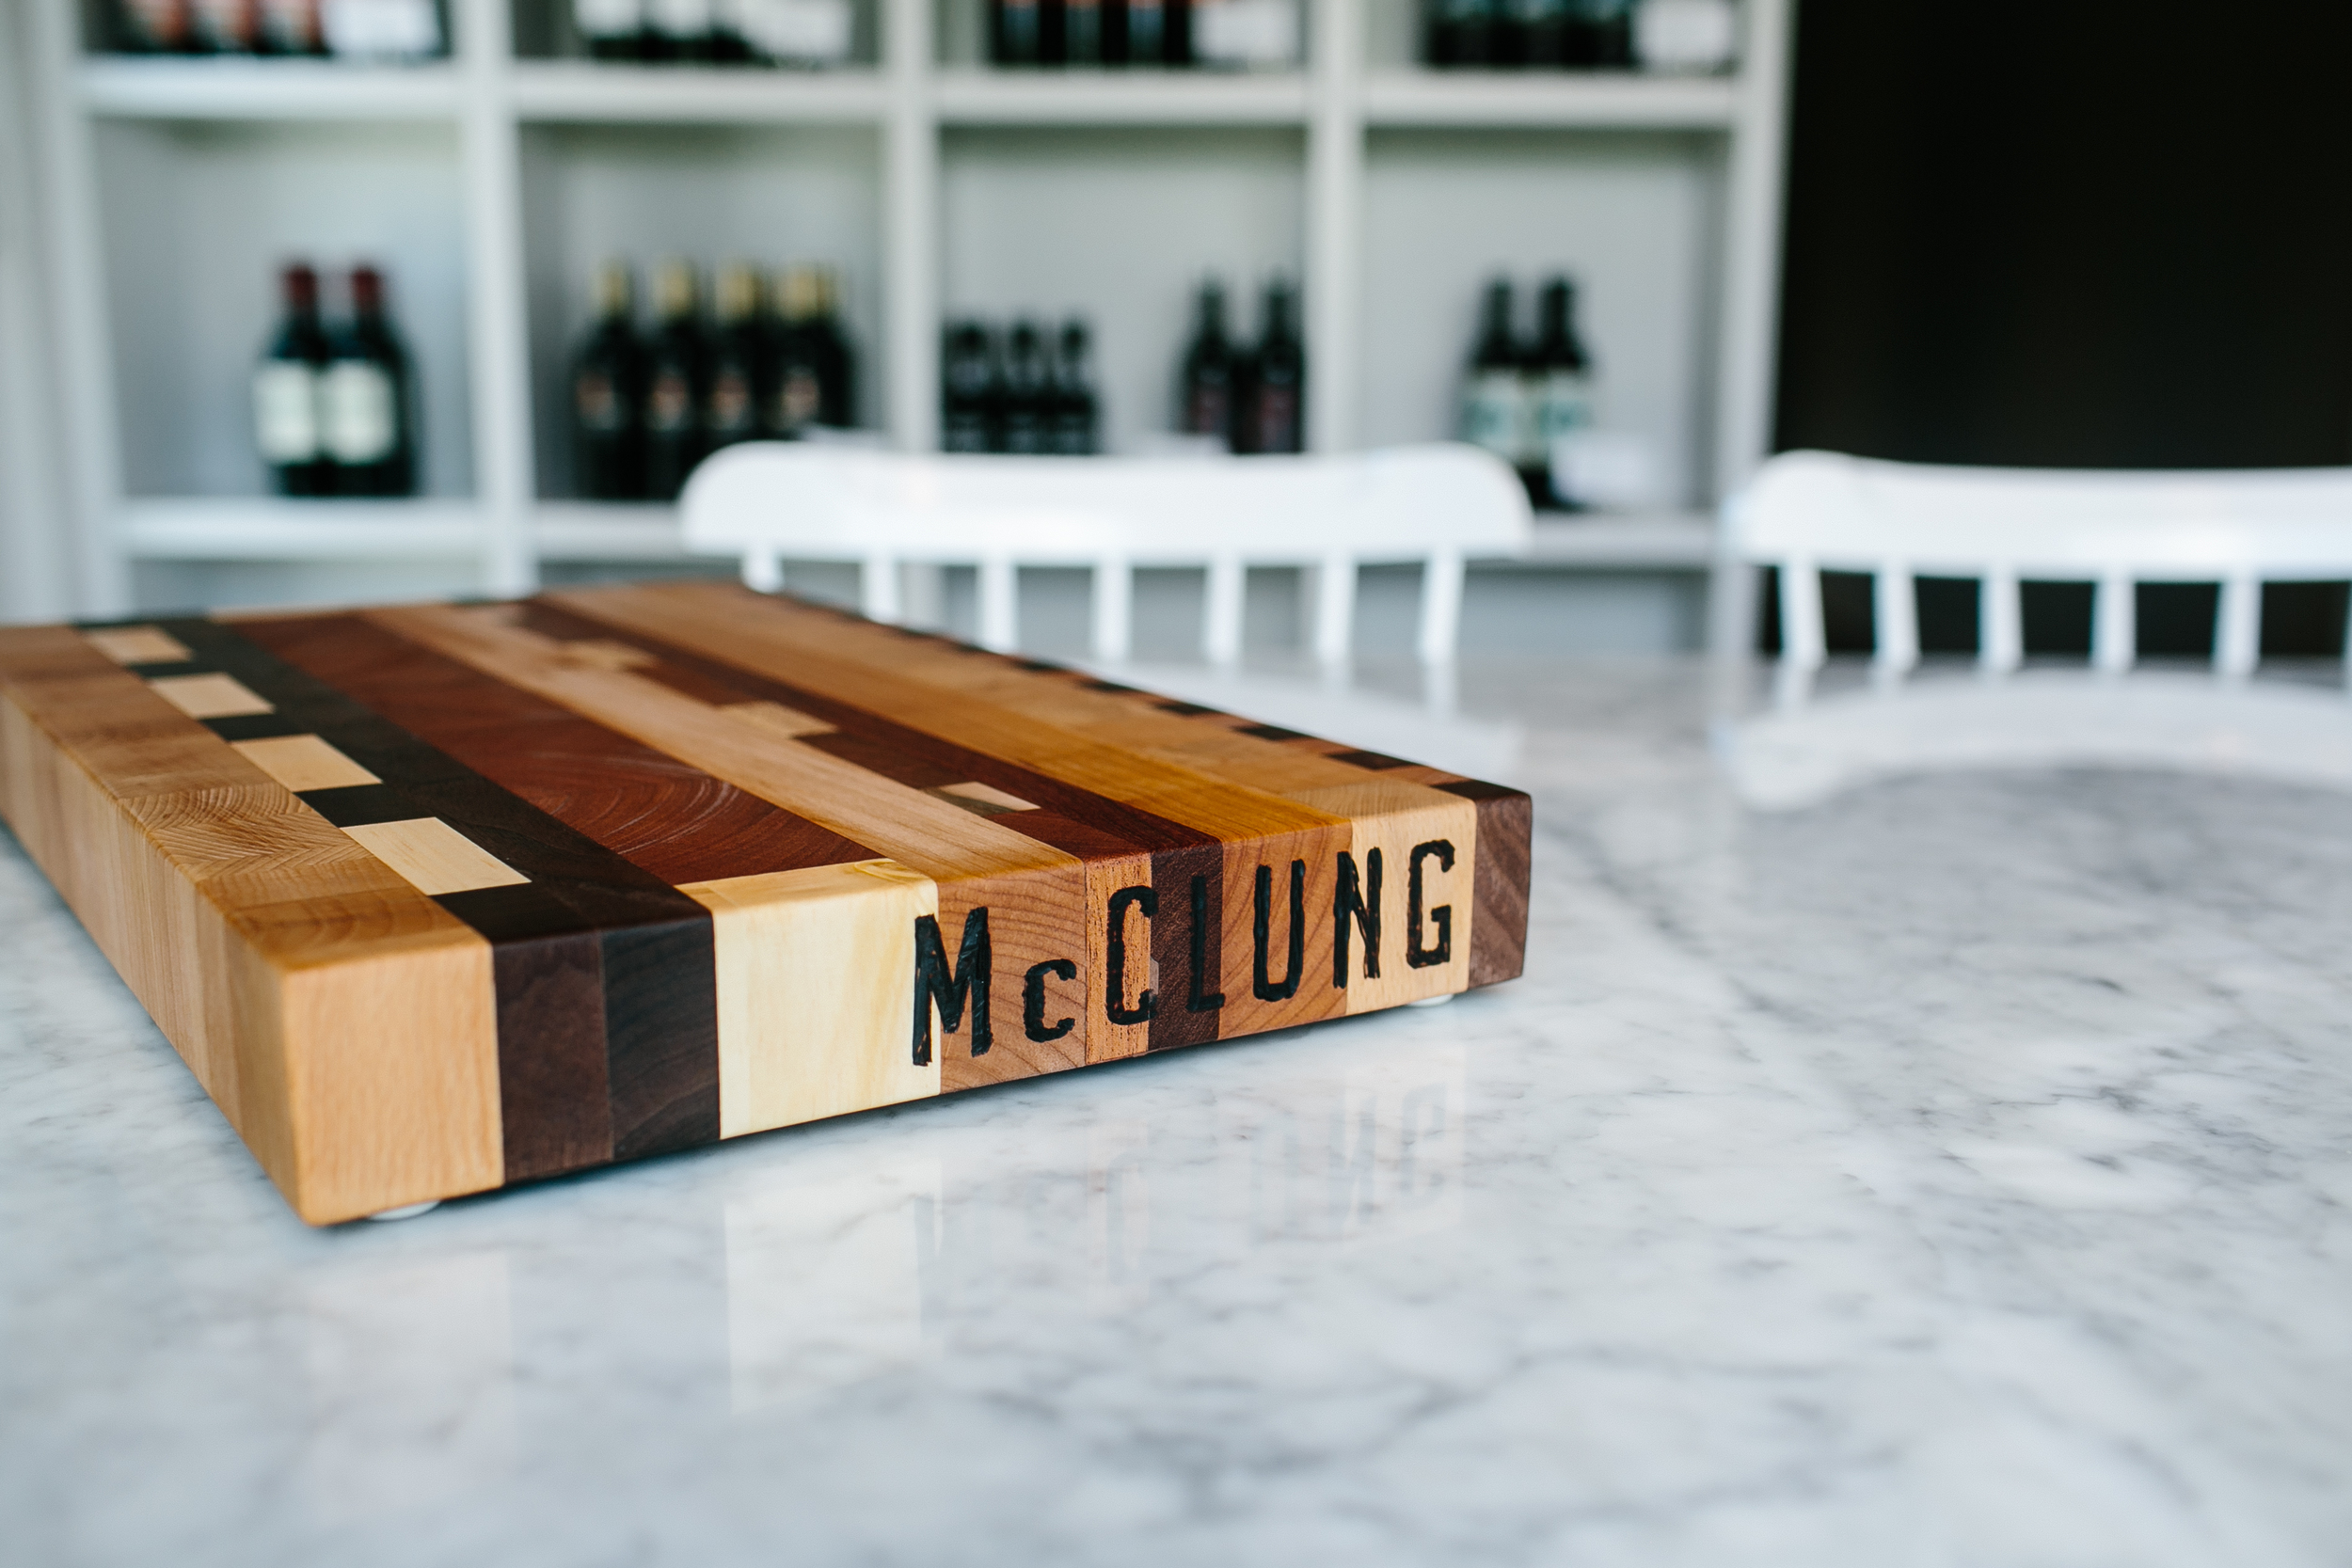 McClung